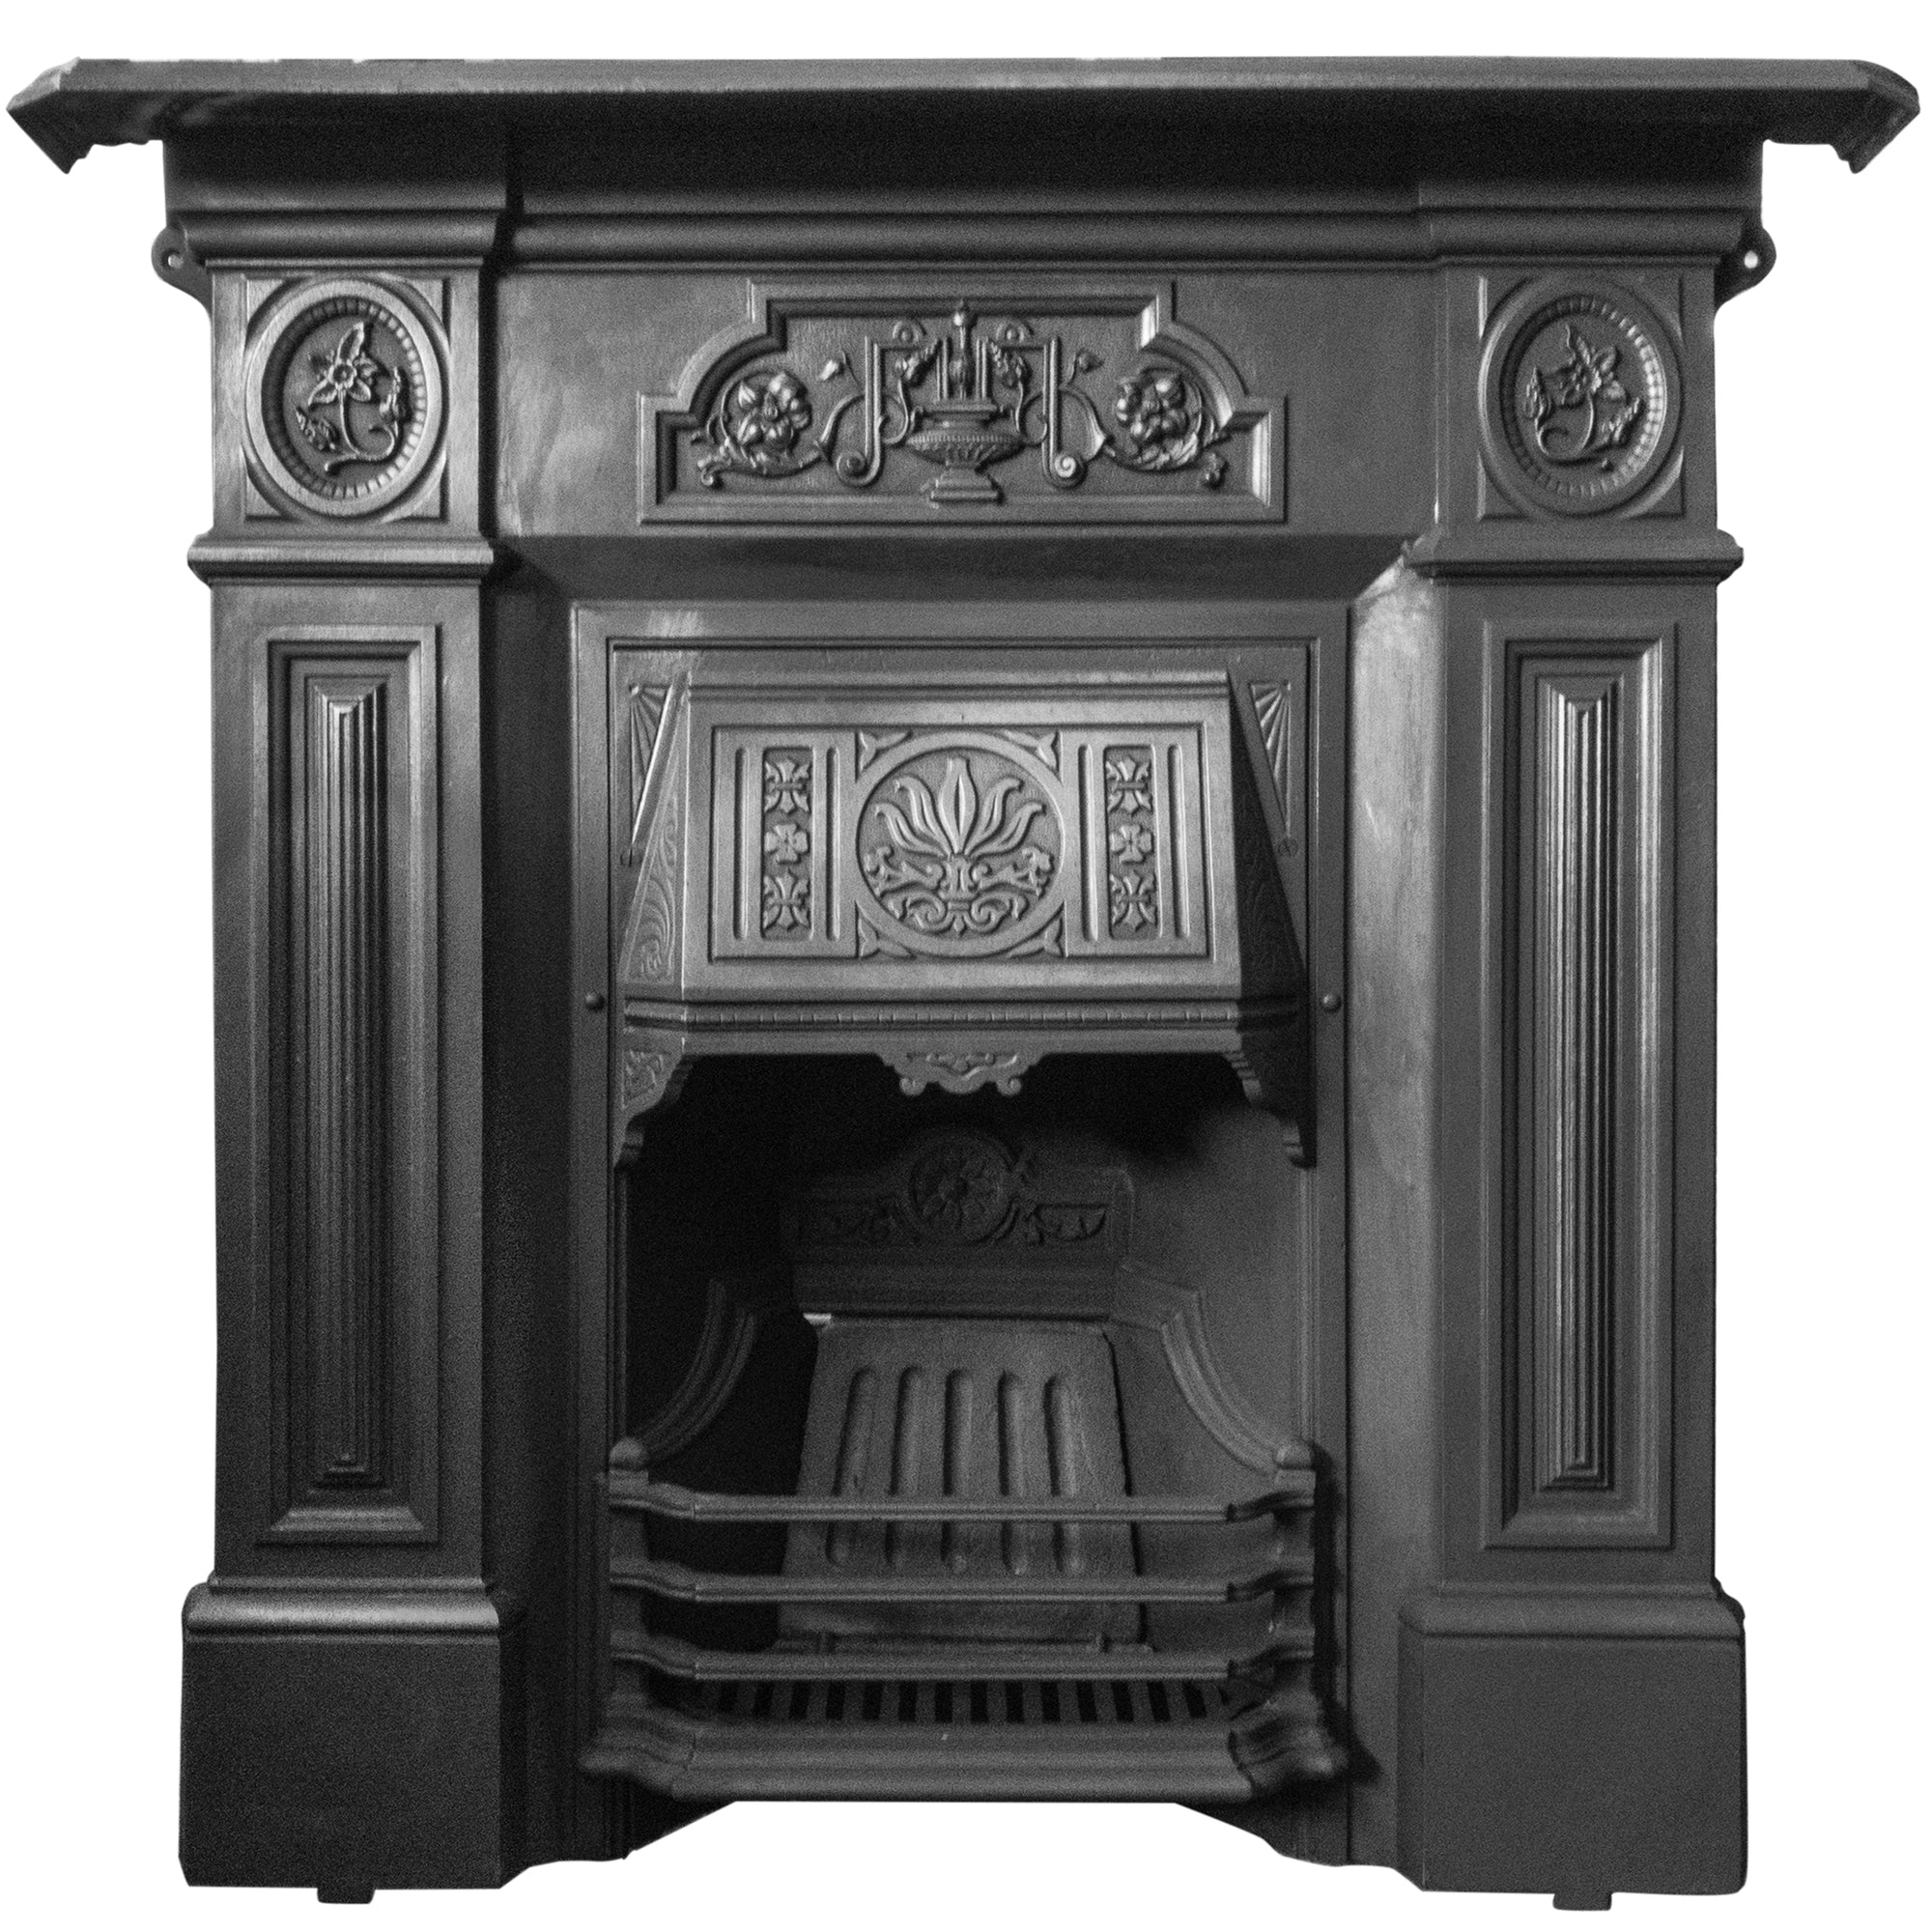 Antique Cast Iron Combination Fireplace | The Architectural Forum